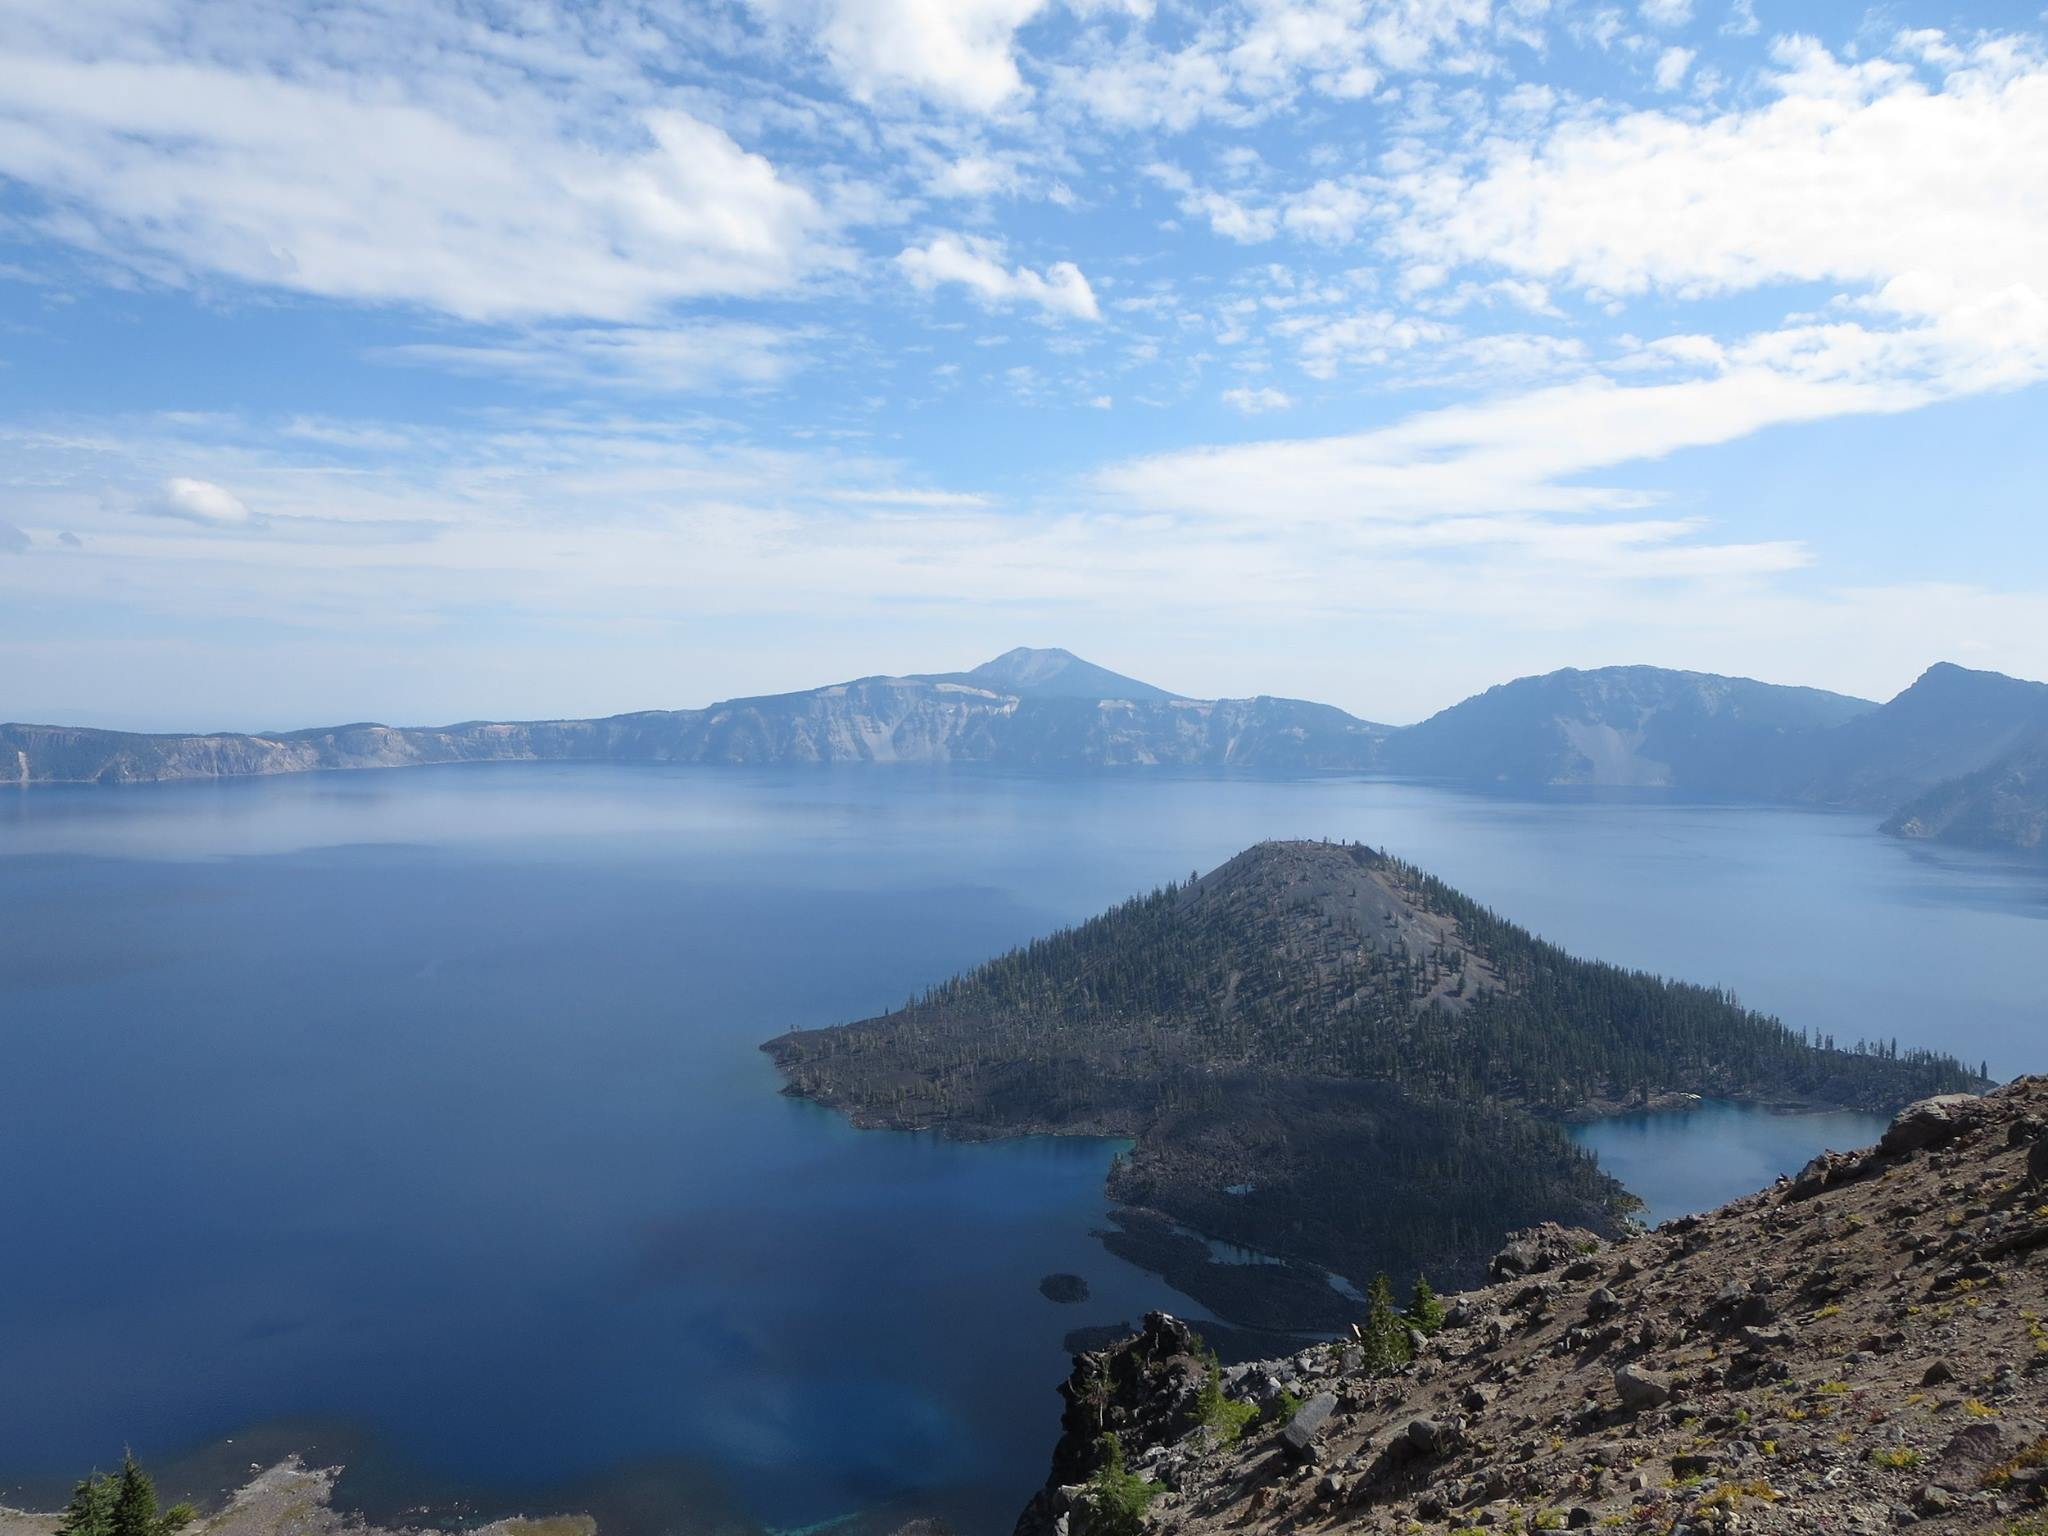 """I learned a lot about  Crater Lake,  thanks to an entertaining presentation by ranger Dave, who shared the """"Top 10 Reasons Why Crater Lake Isn't Just an Ordinary Lake"""" from the Sinnott Memorial Overlook."""